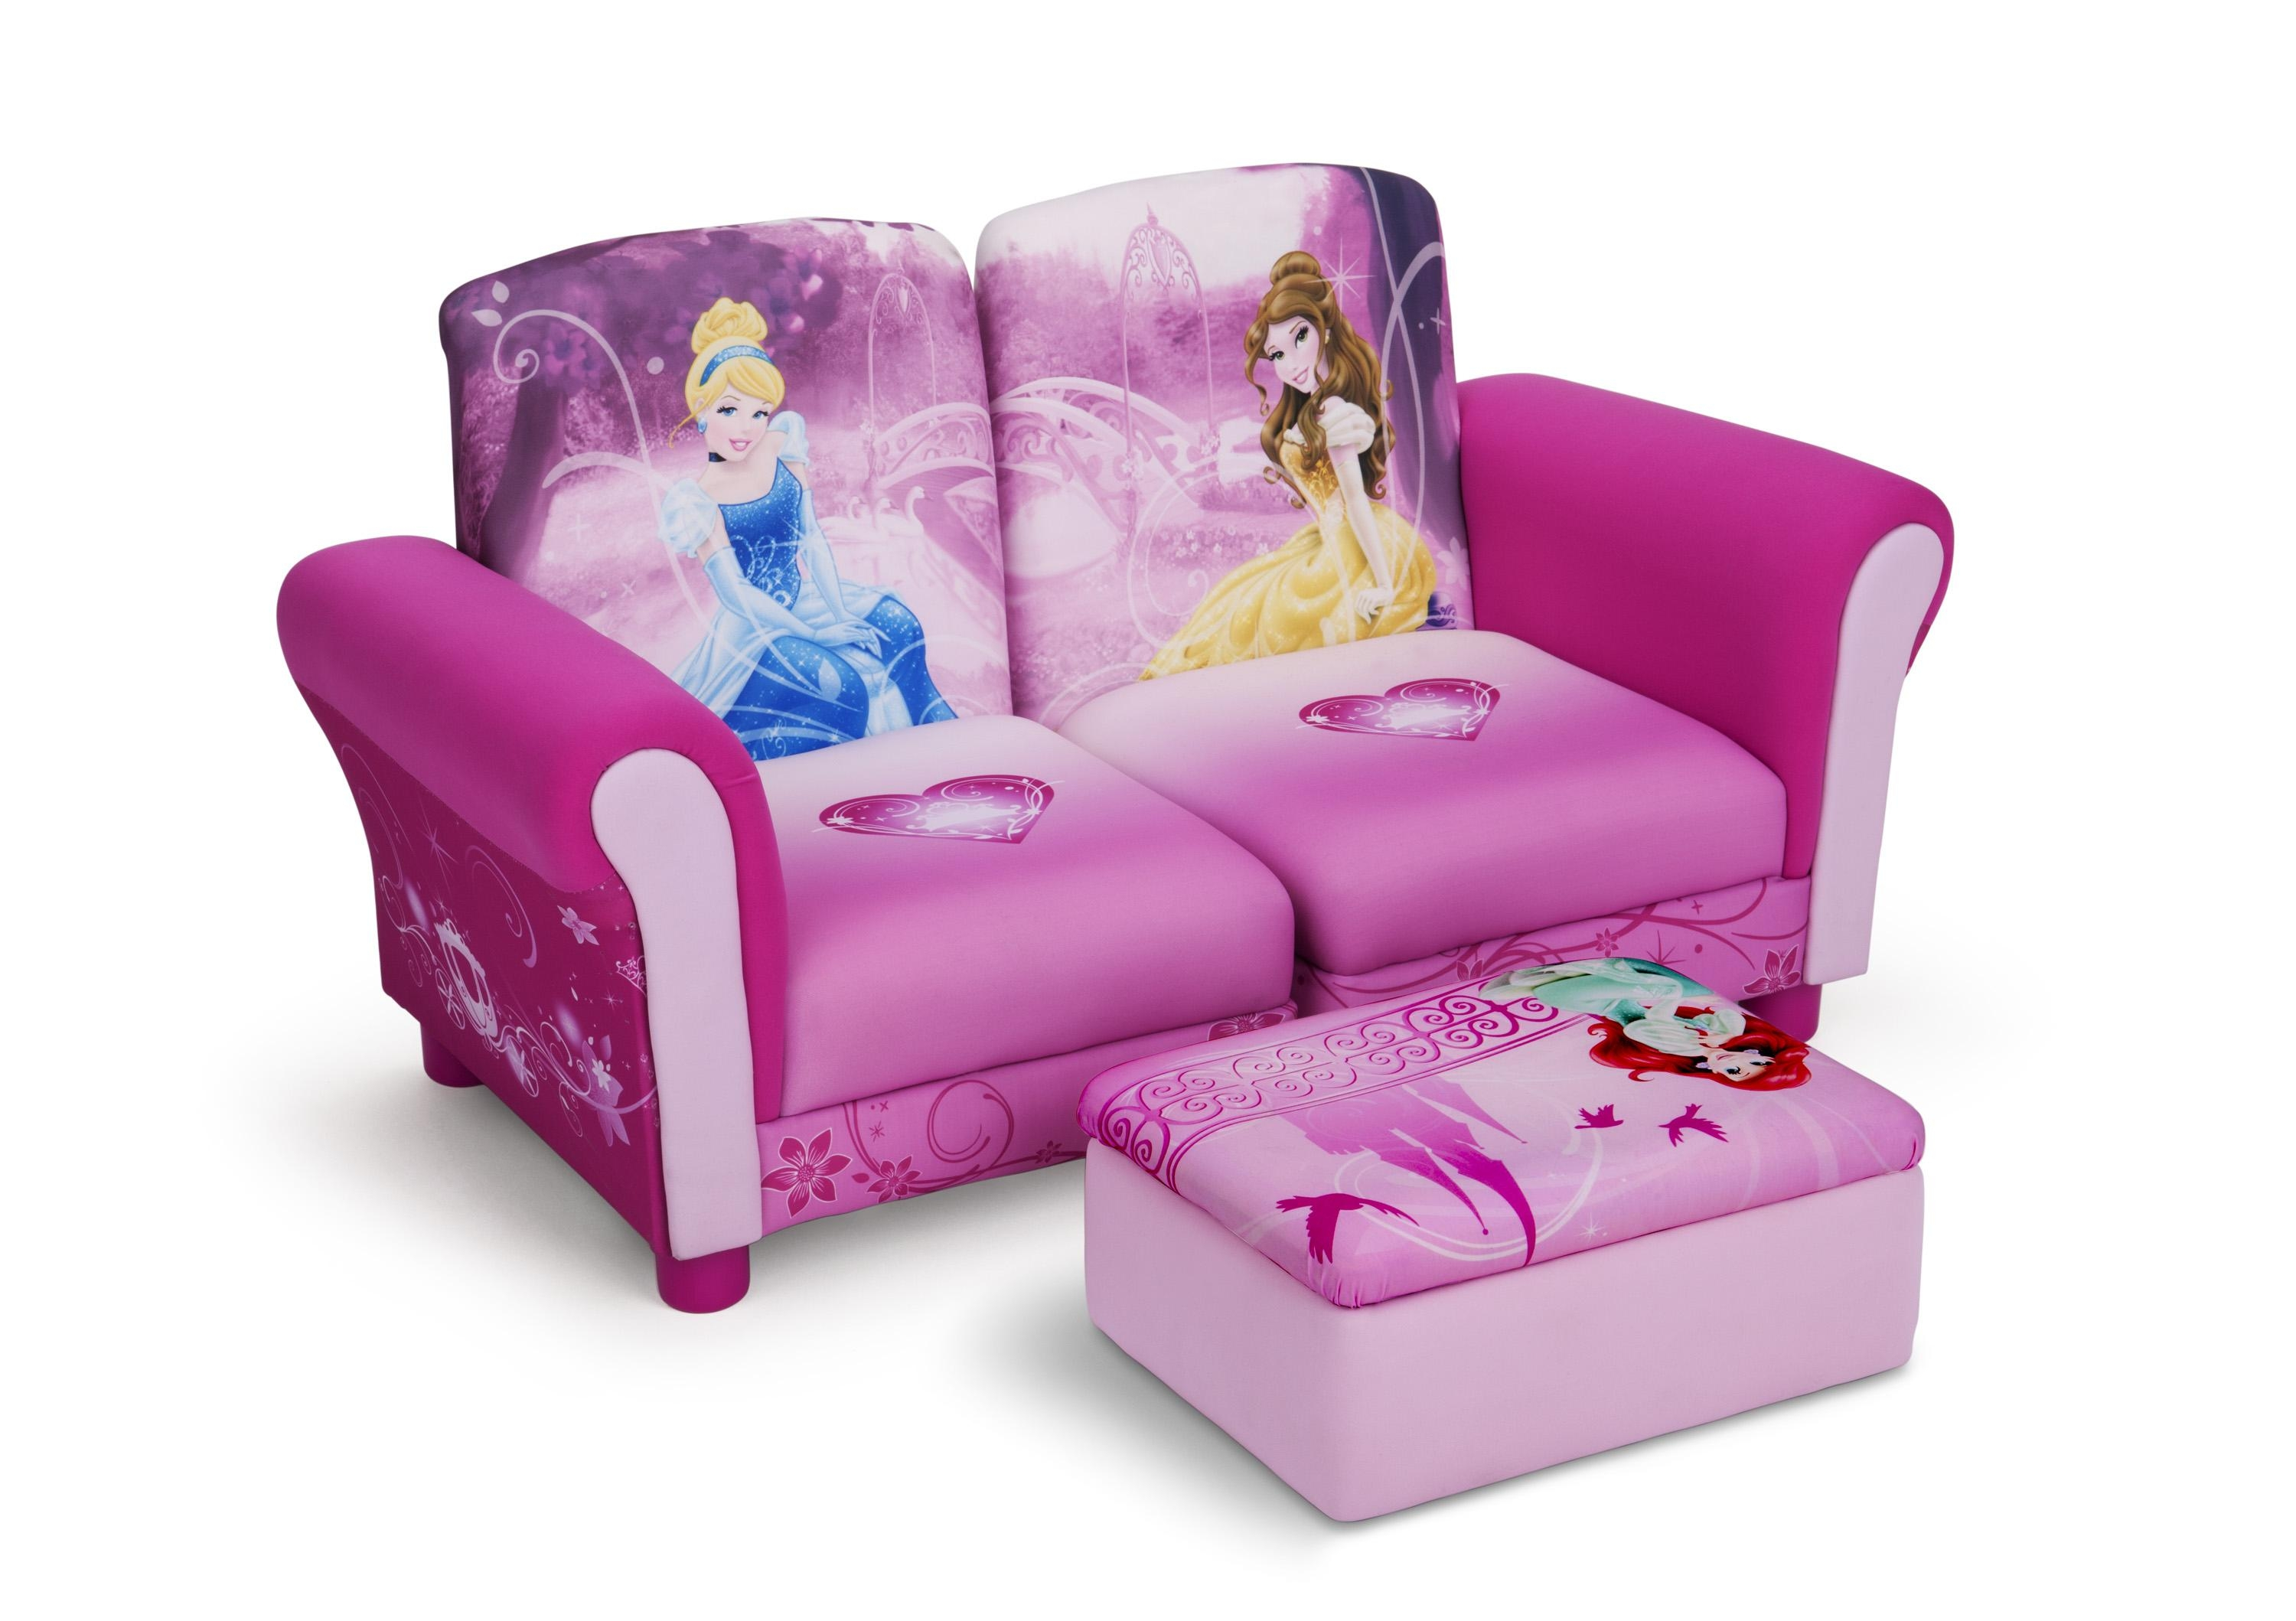 Sofas Center : 91F6A372B834 1 Sofa Chair Fordlerdlers Disney Within Disney Sofa Chairs (View 2 of 20)